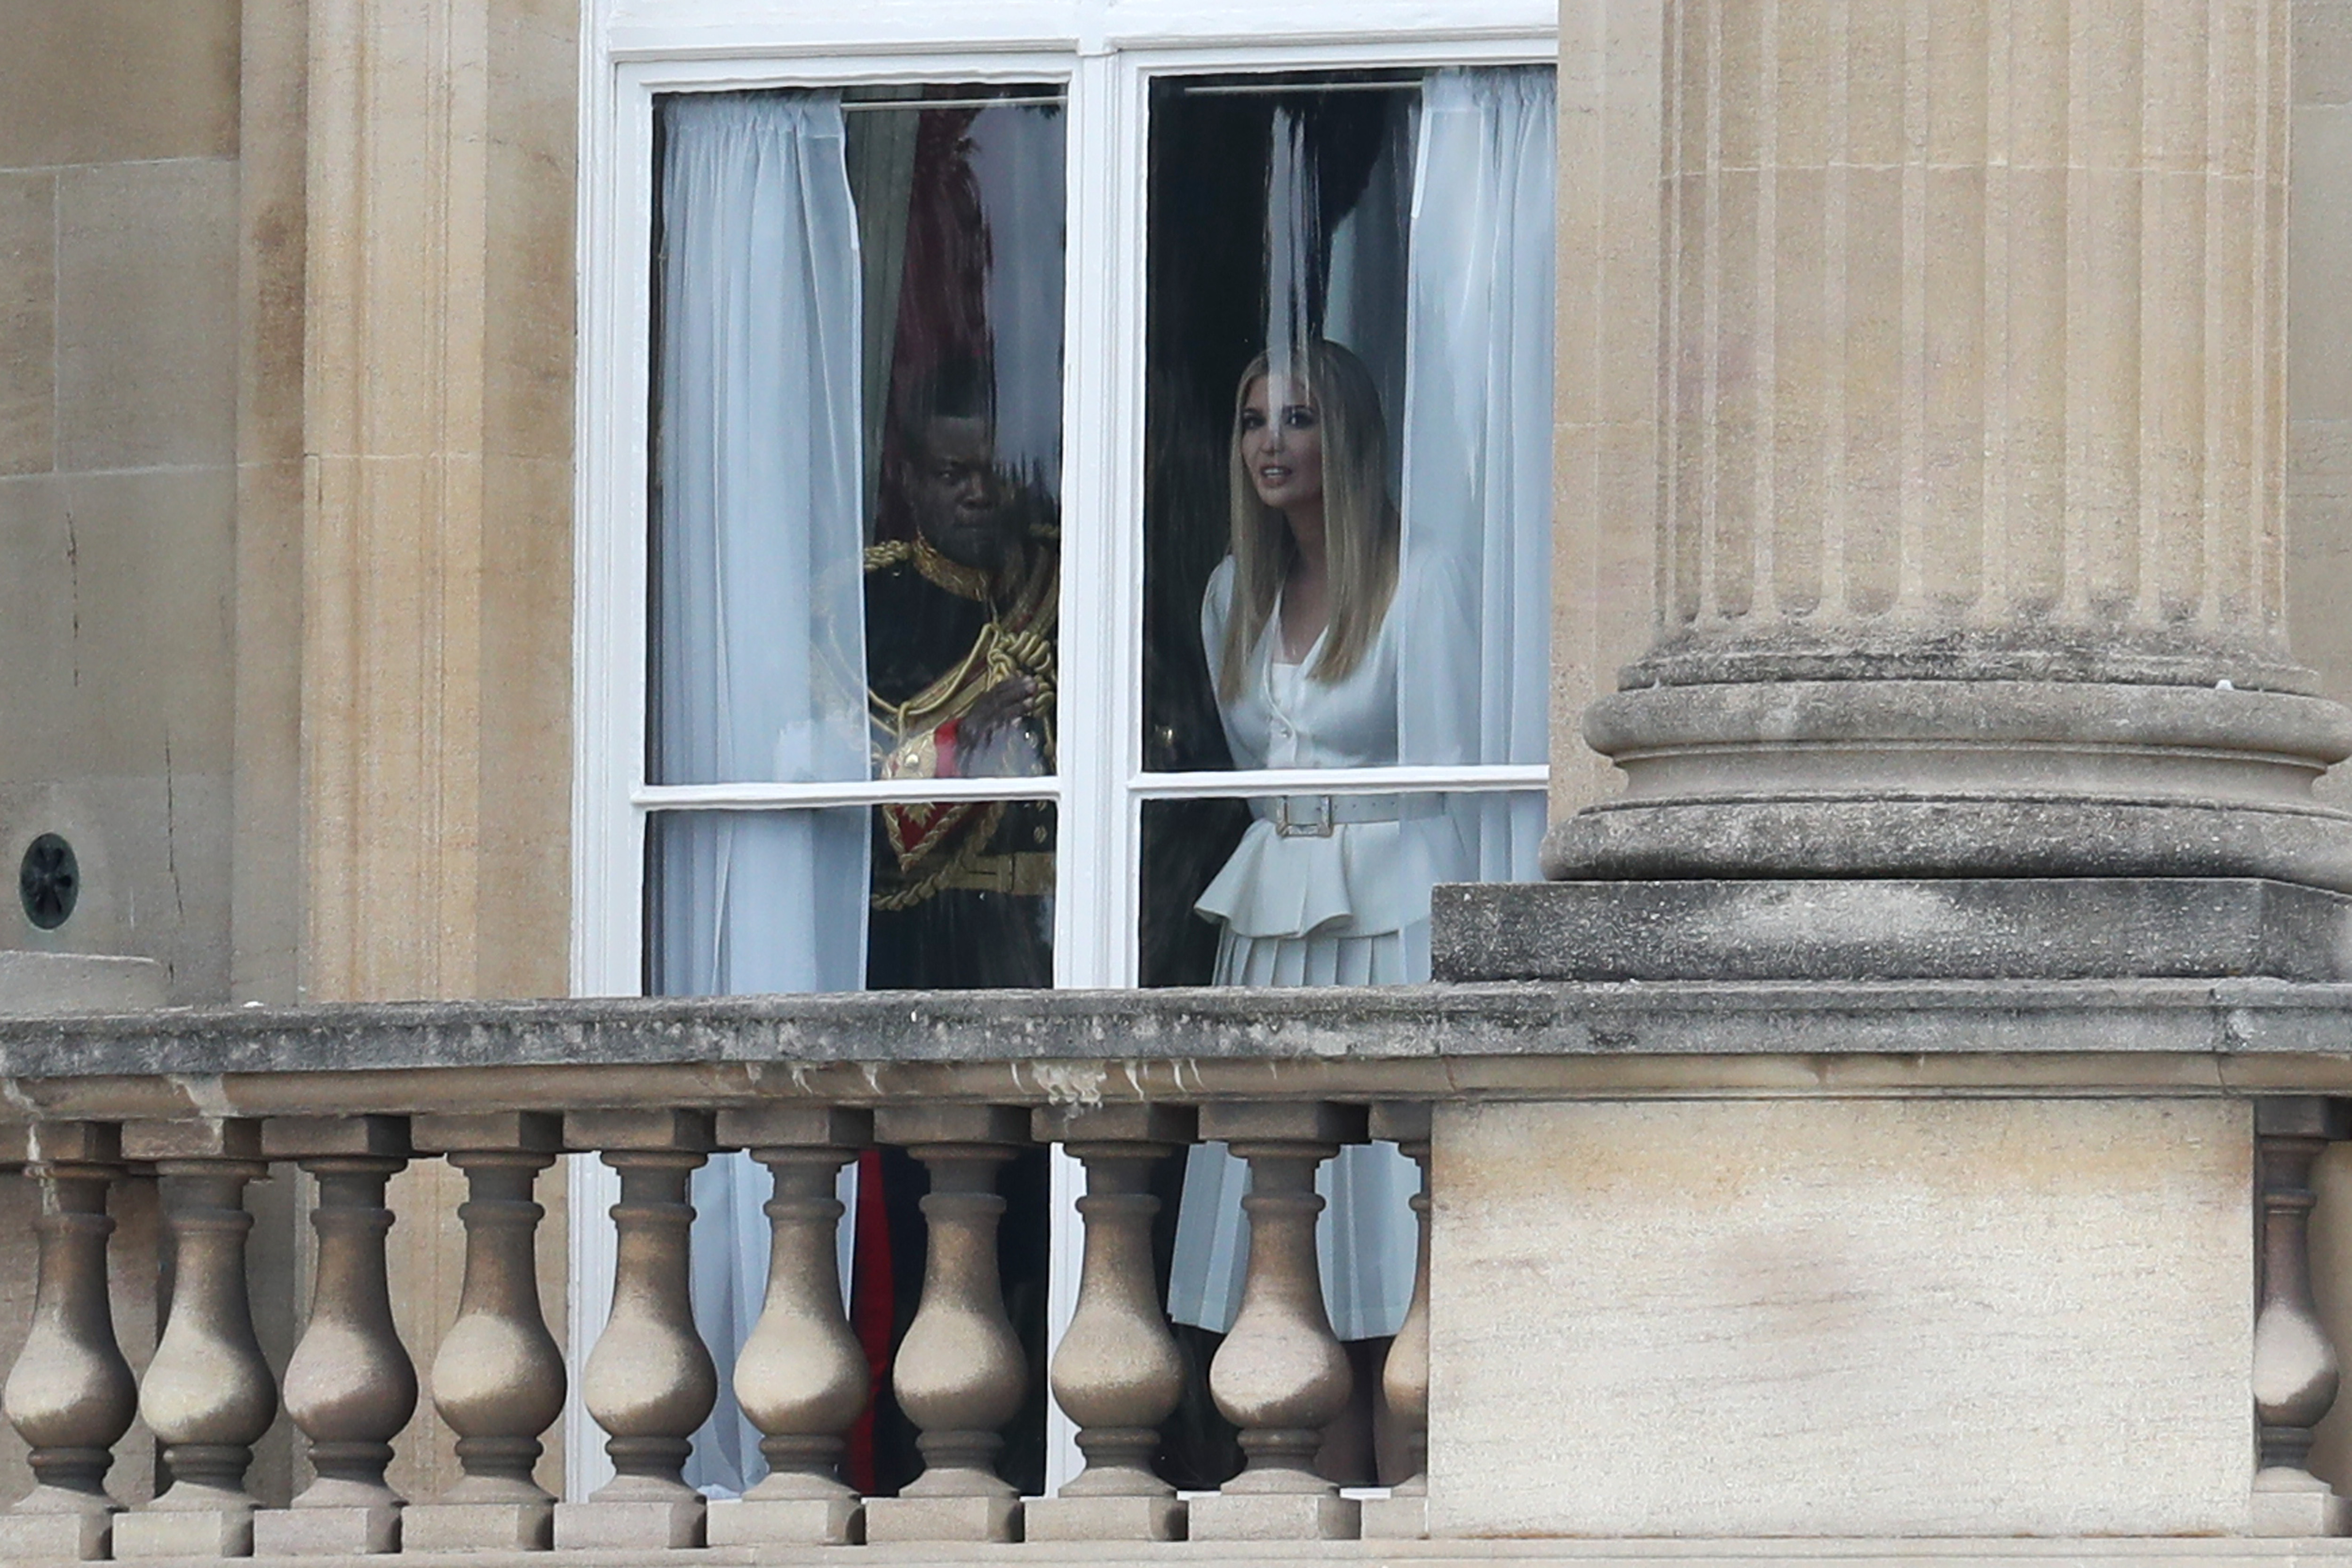 LONDON, ENGLAND - JUNE 03: Ivanka Trump looks out of the window at Buckingham Palace ahead of the visit of US President Donald Trump and First Lady Melania Trump on June 03, 2019 in London, England. President Trump's three-day state visit will include lunch with the Queen, and a State Banquet at Buckingham Palace, as well as business meetings with the Prime Minister and the Duke of York, before travelling to Portsmouth to mark the 75th anniversary of the D-Day landings. (Photo by Chris Jackson/Getty Images)